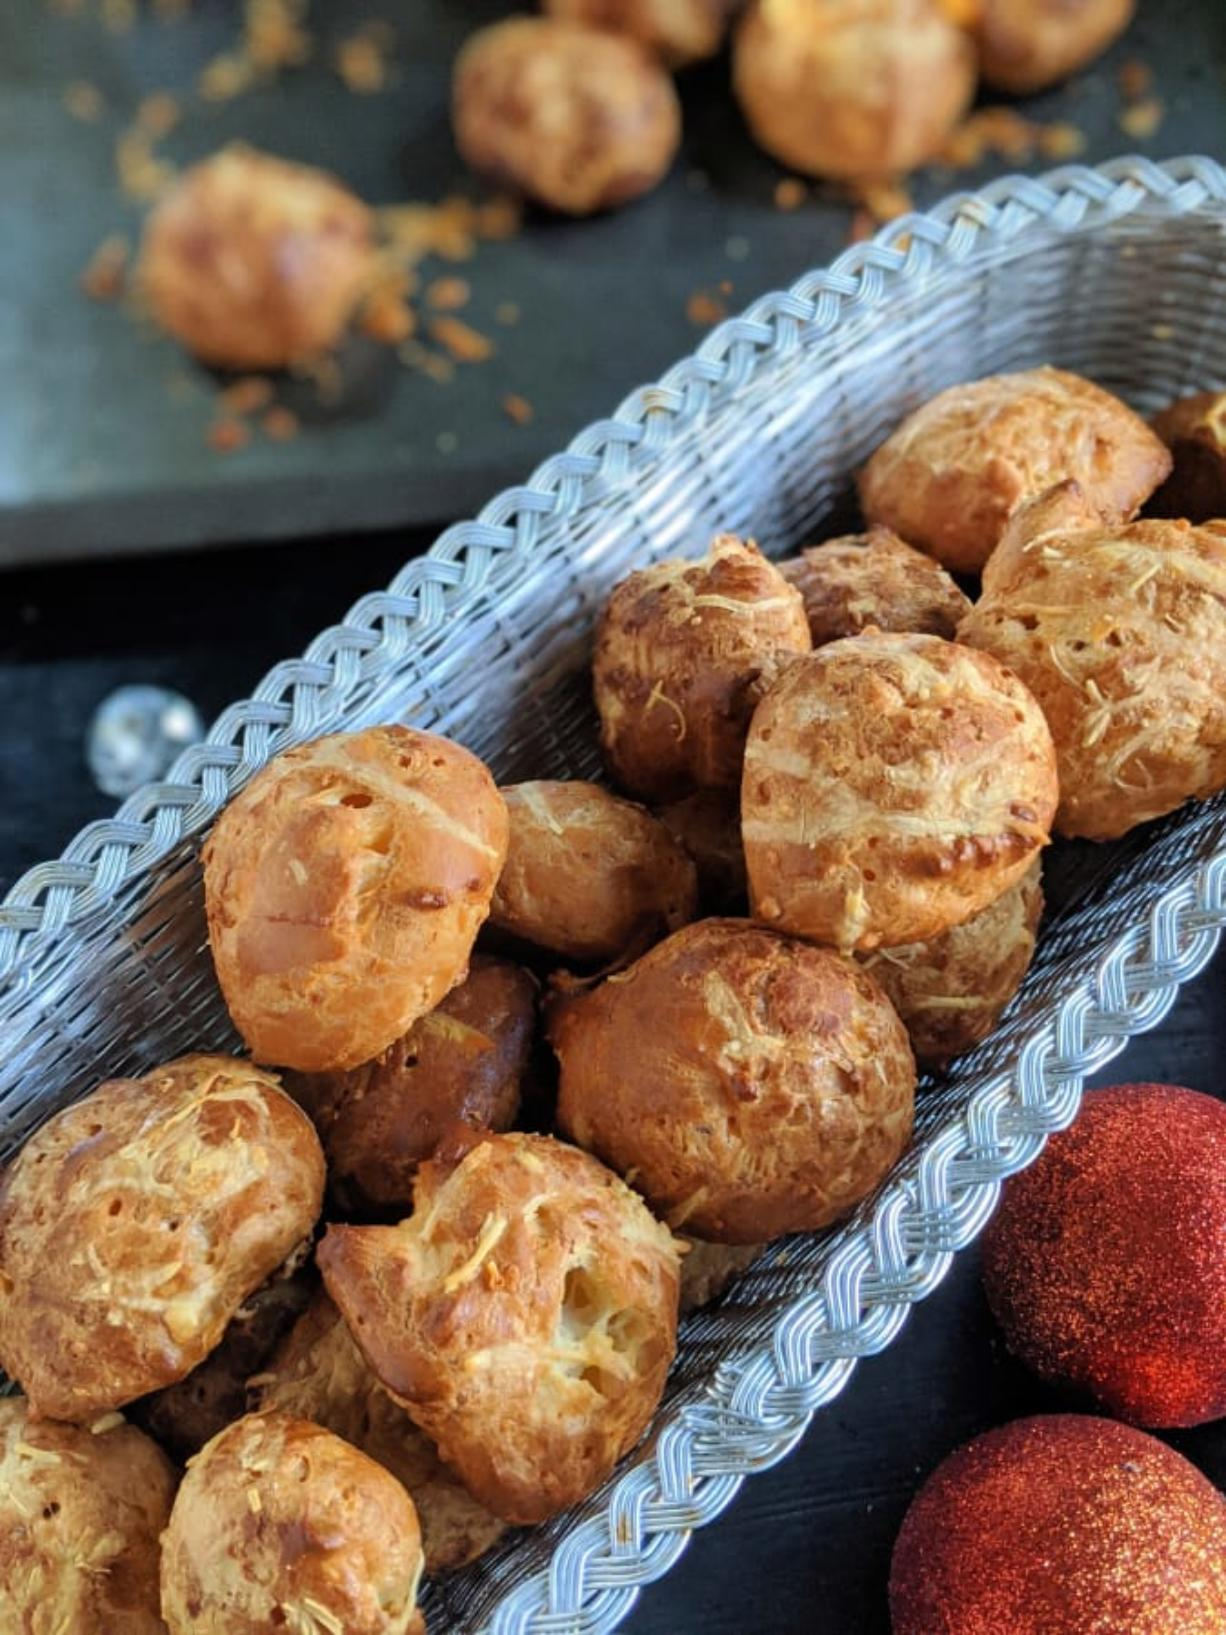 Light and airy, cheese gougeres are easy to make, and pair wonderfully with Champagne on New Year's Eve.